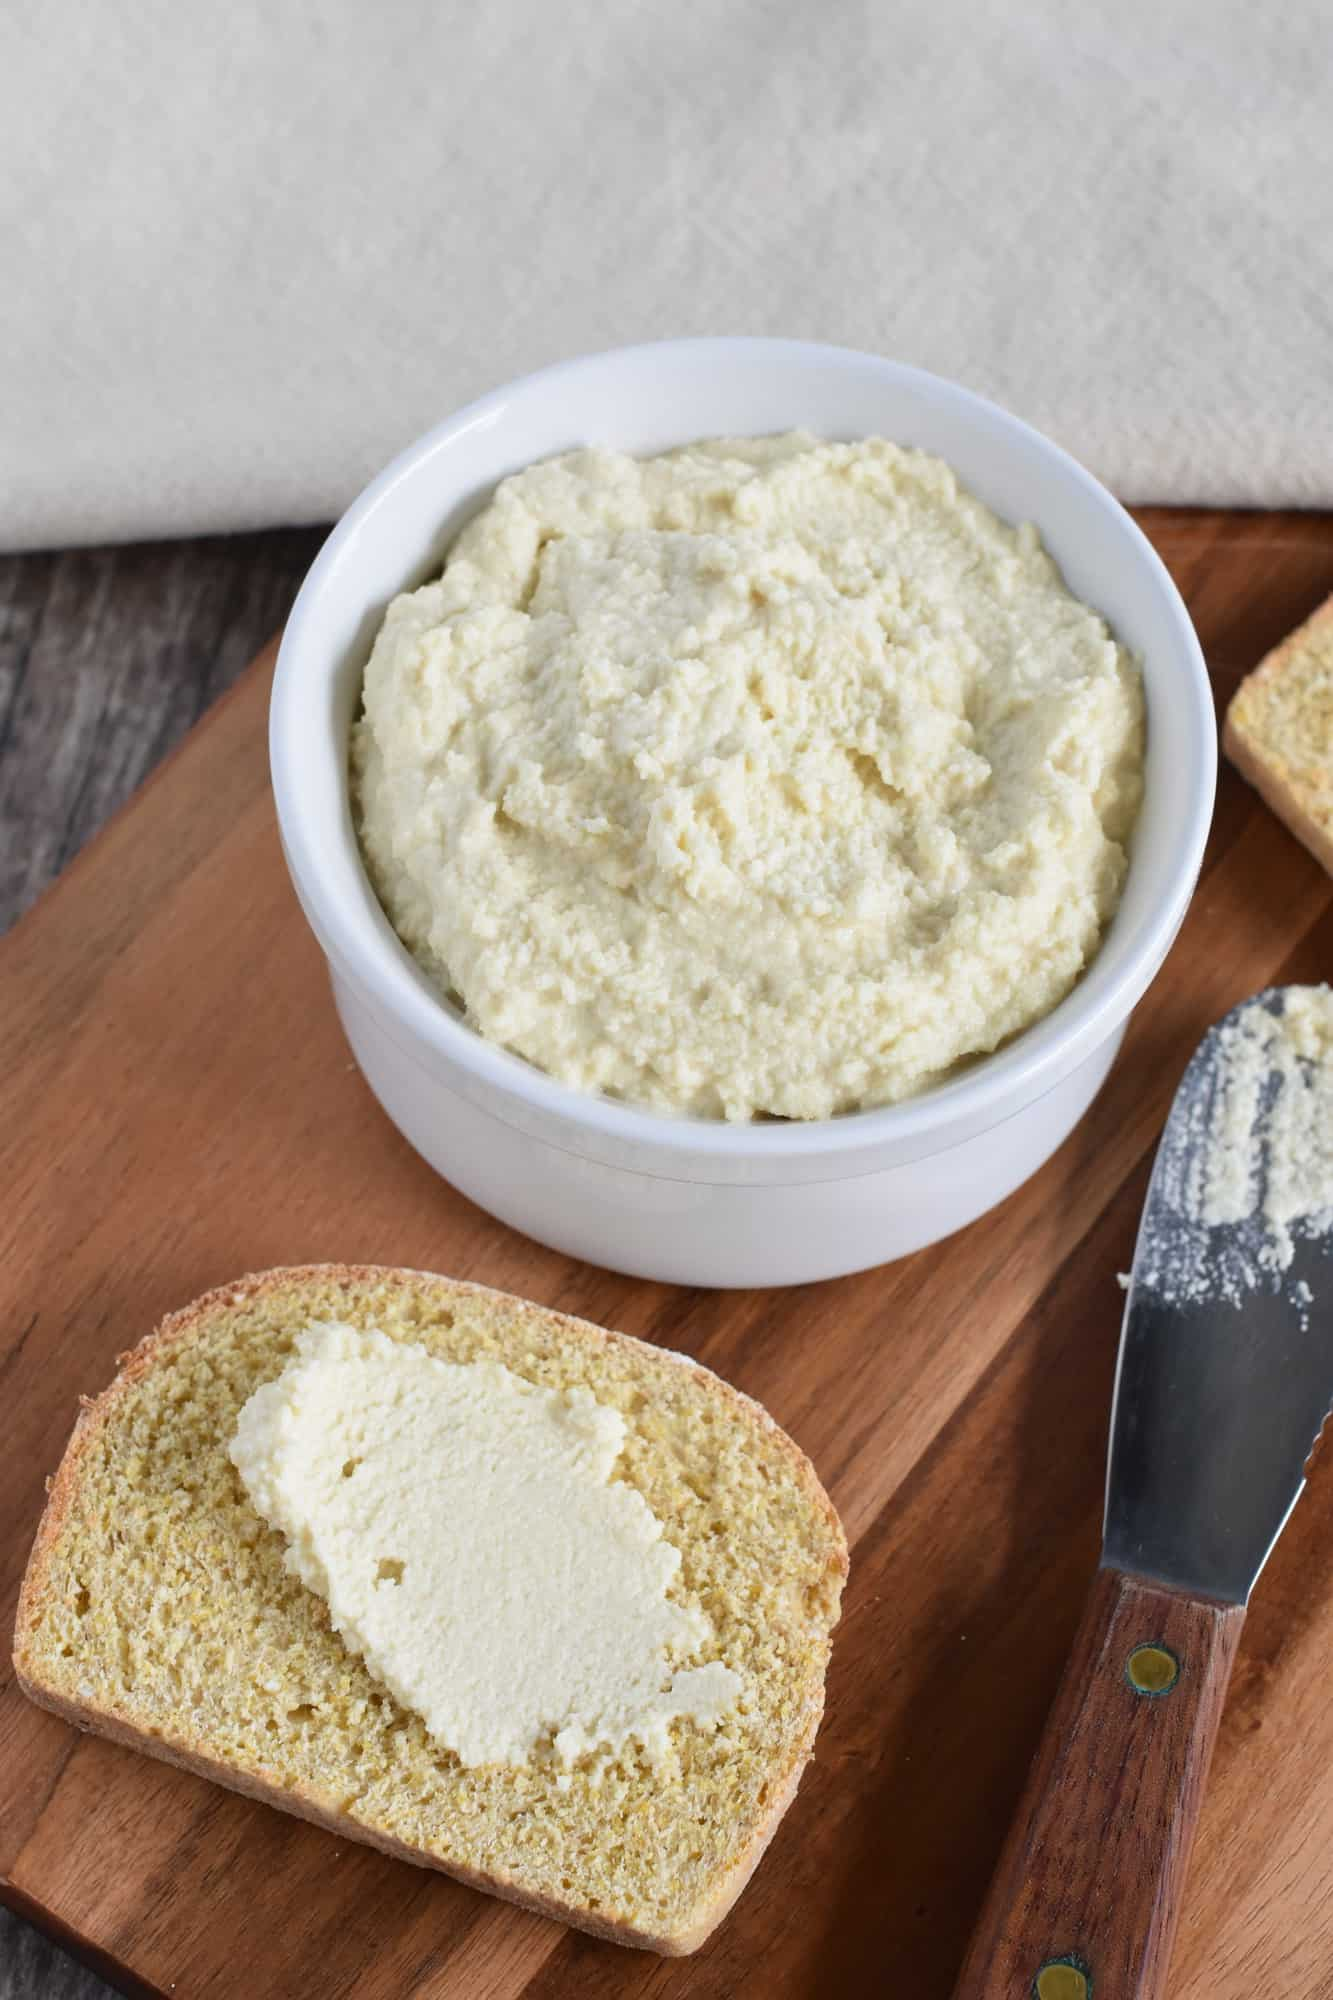 some almond cheese spread on a piece of gluten-free bread with the knife next to it and the rest of the cheese in a bowl behind it